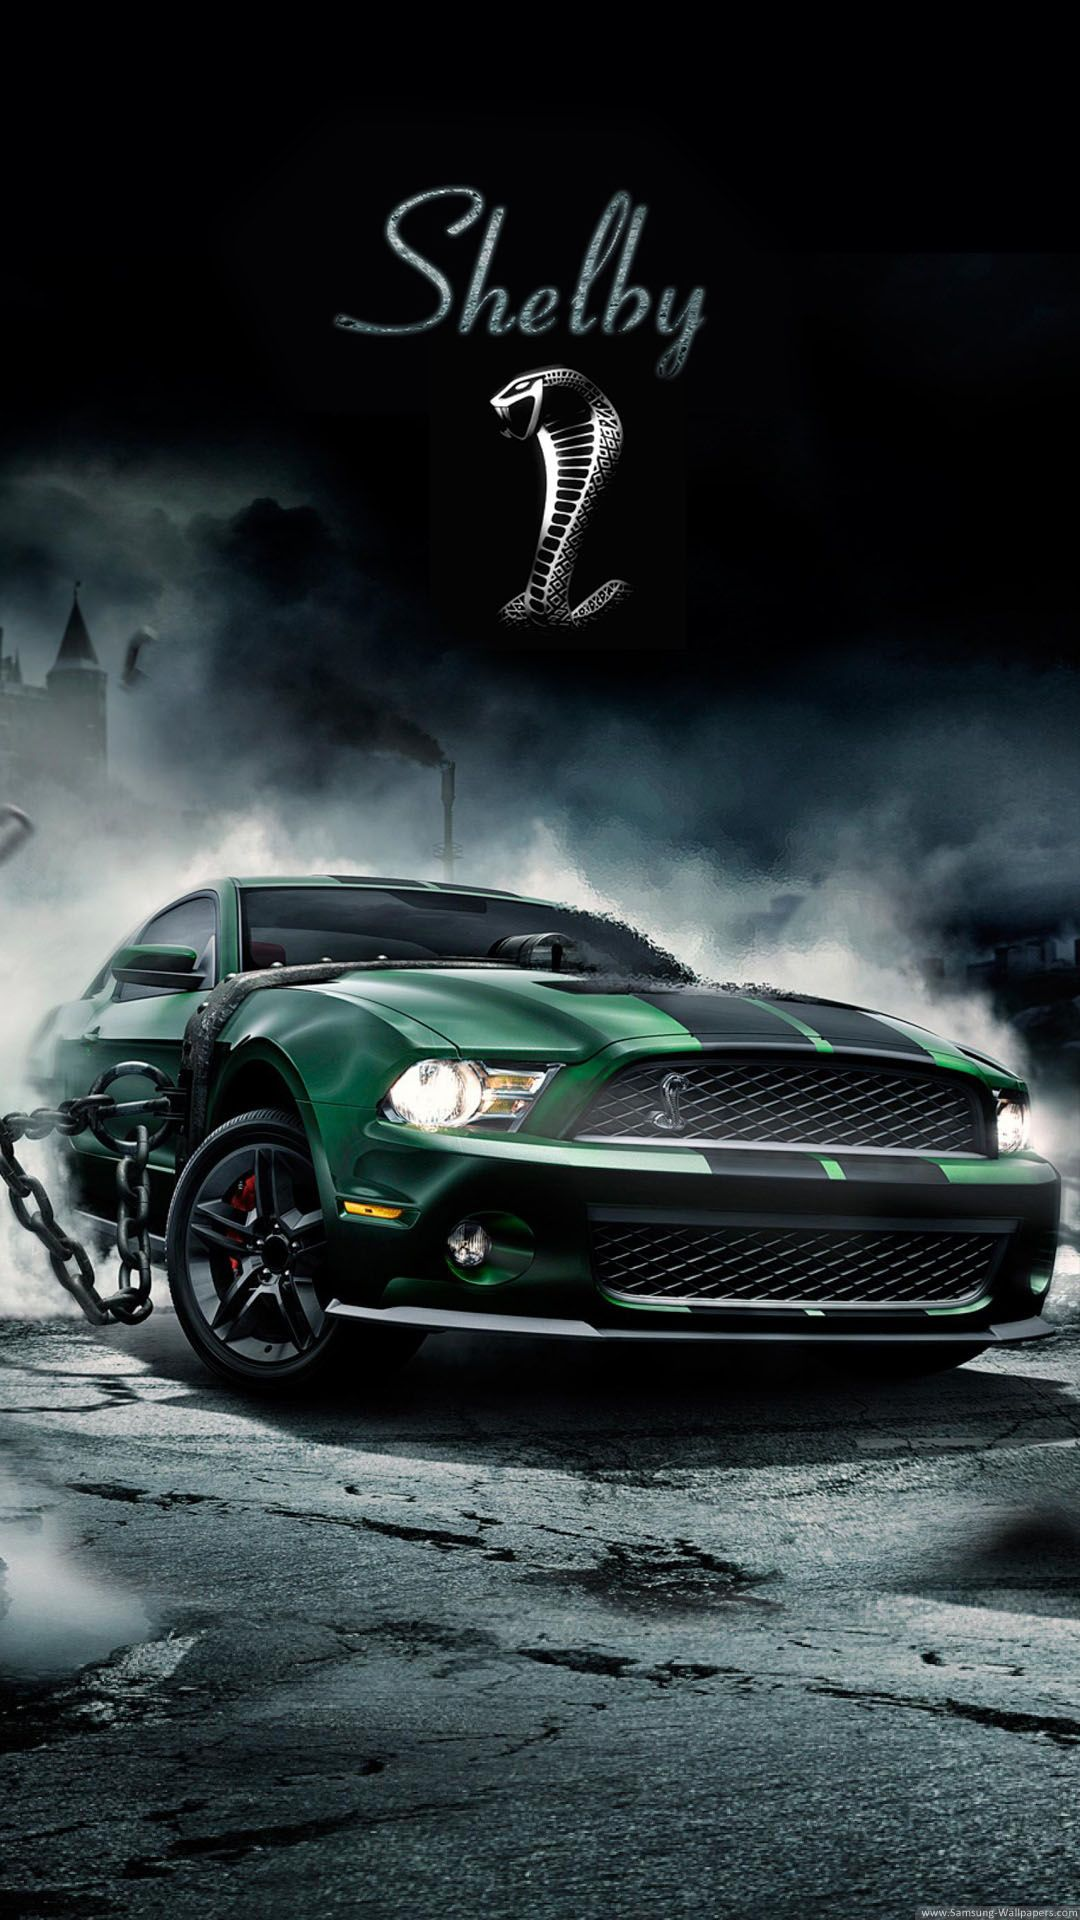 Cars Shelby Cobra Muscle Car Wallpapers Mustang Wallpaper Car Iphone Wallpaper Mustang Iphone Wallpaper